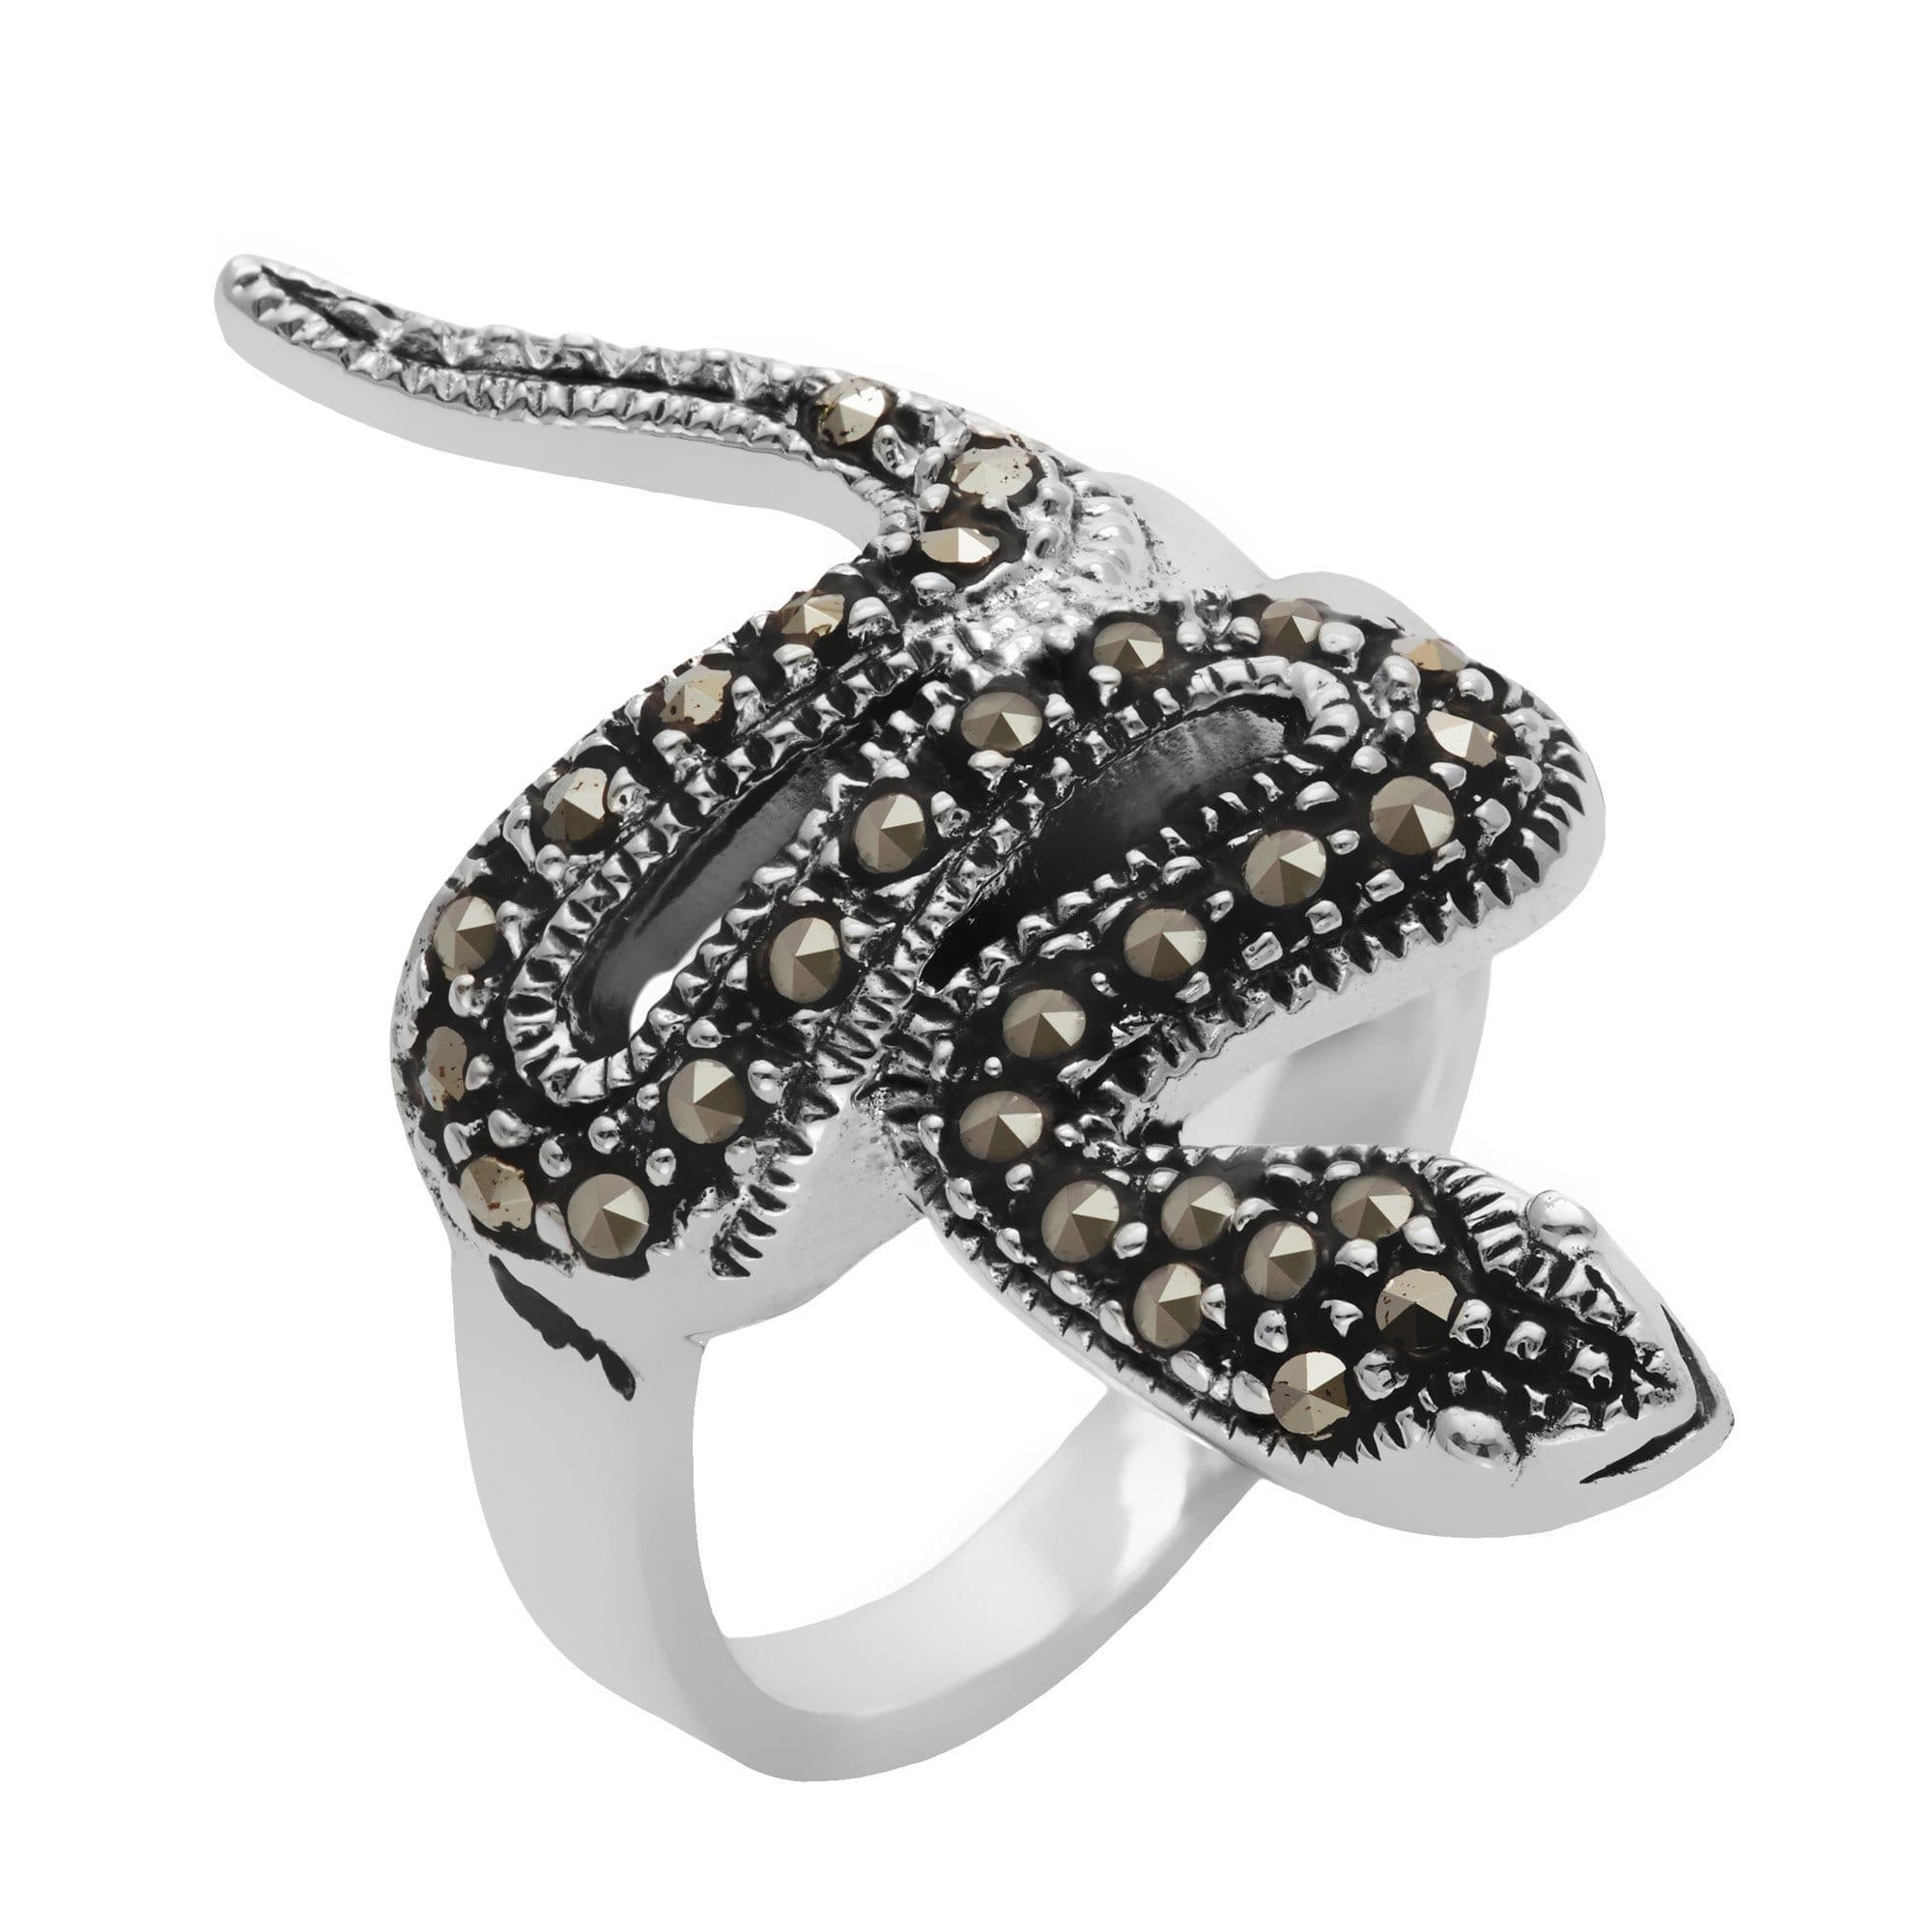 zoom viper serpent unique ring listing fullxfull snake il jewelry cobra rings